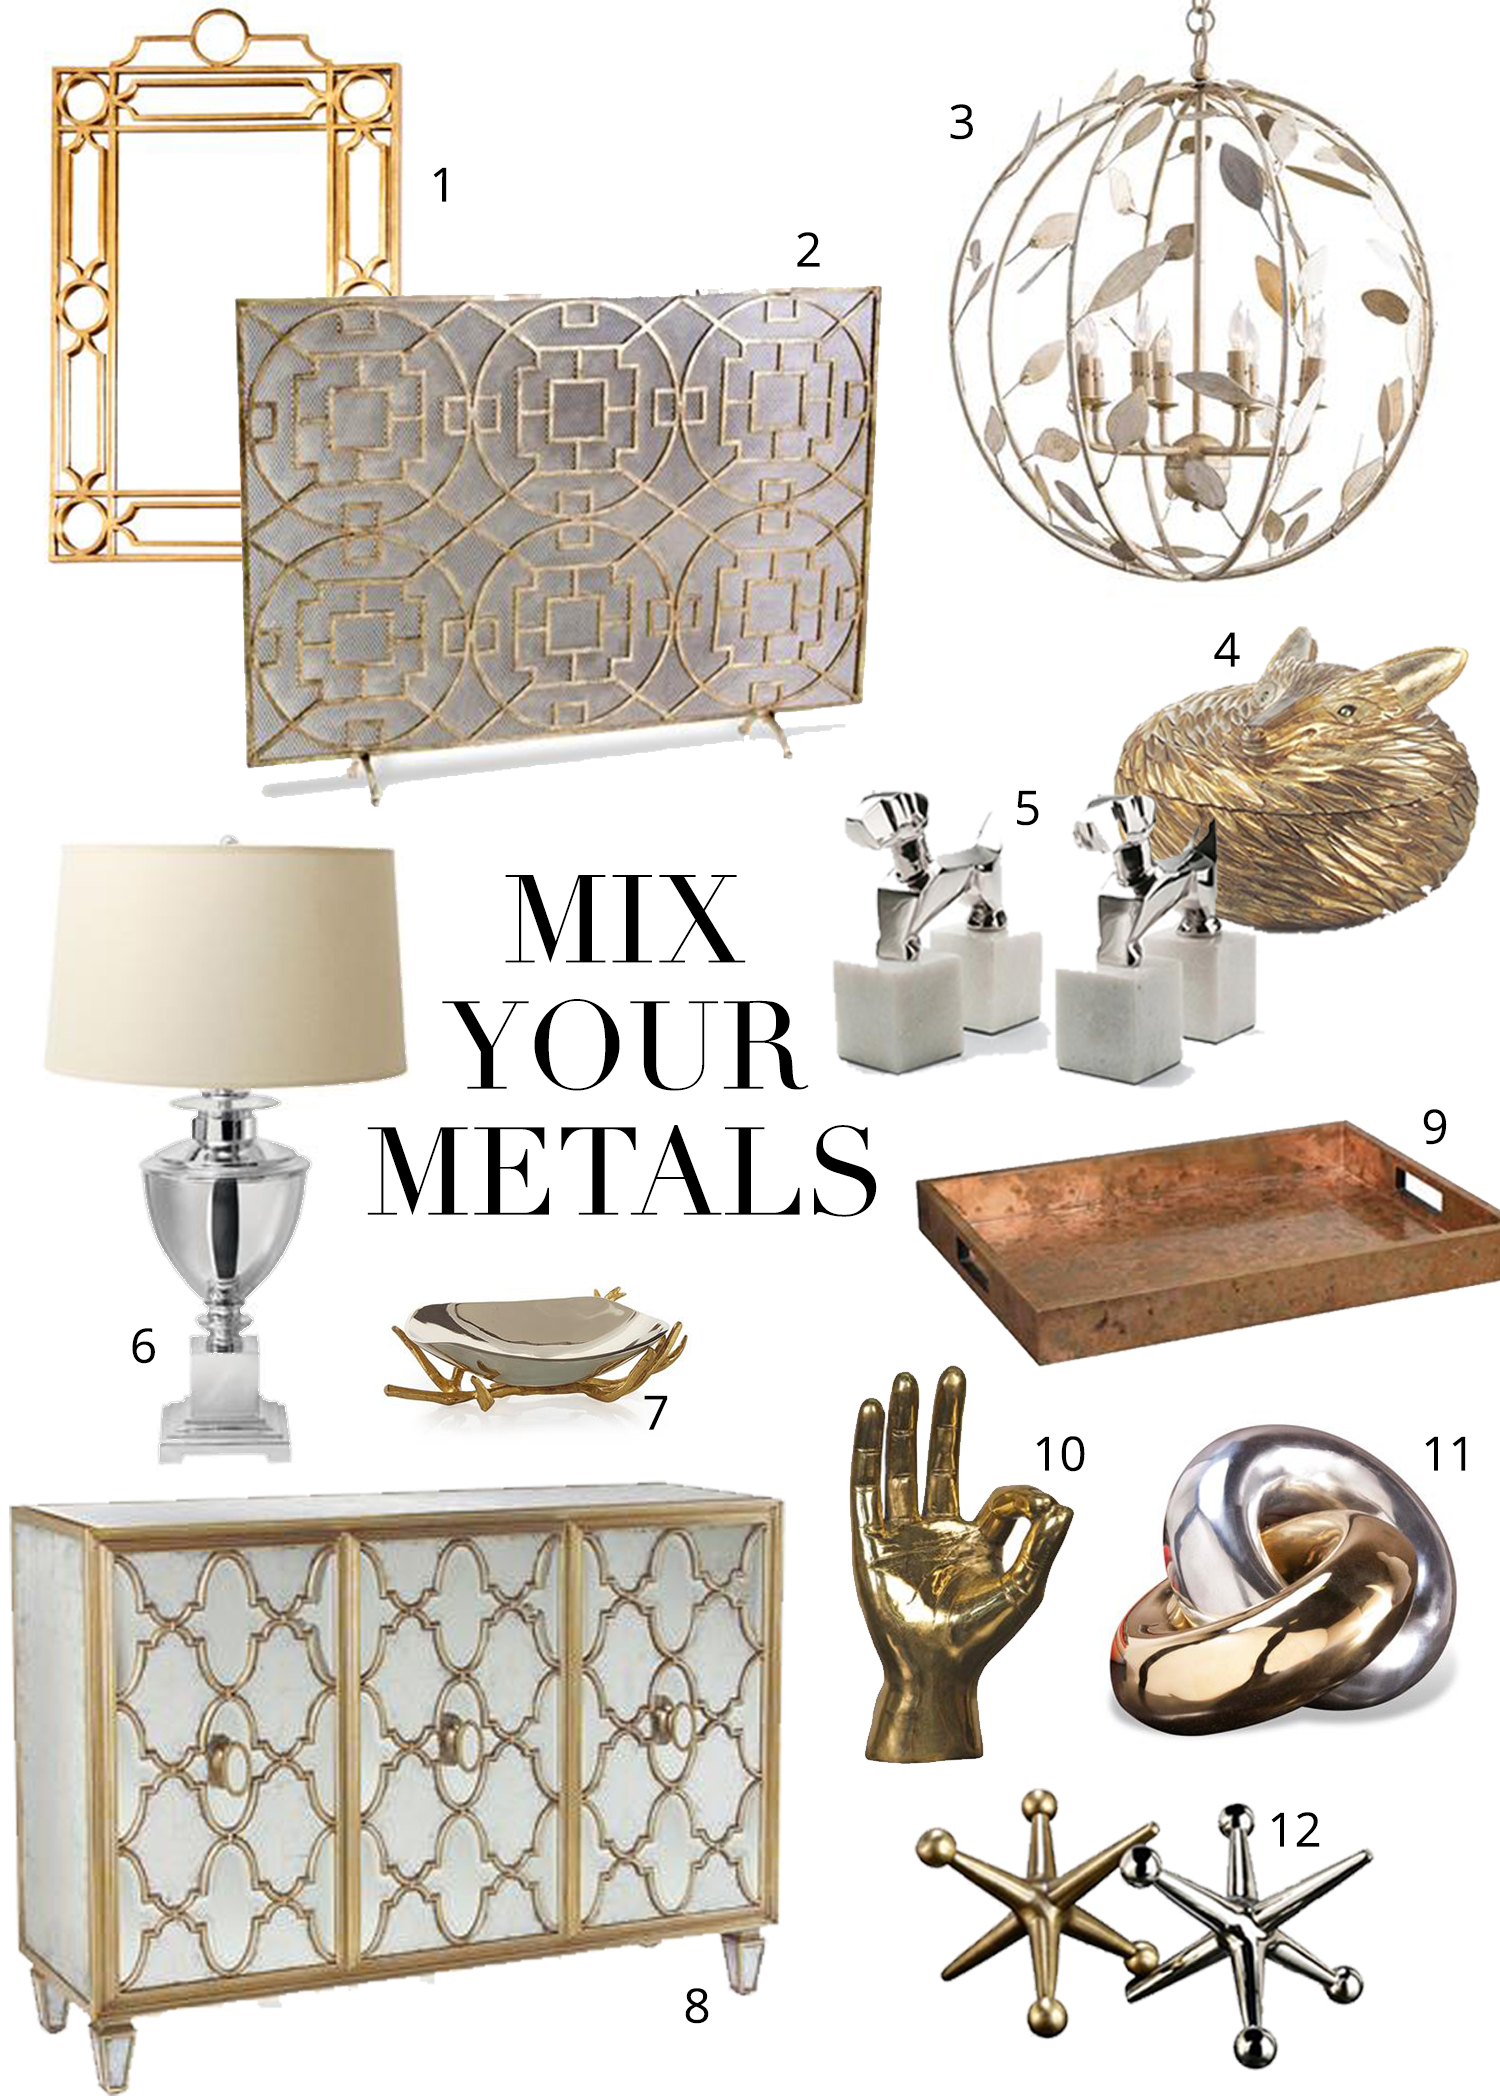 Mixing metals the do 39 s and don 39 ts for Home decor accents